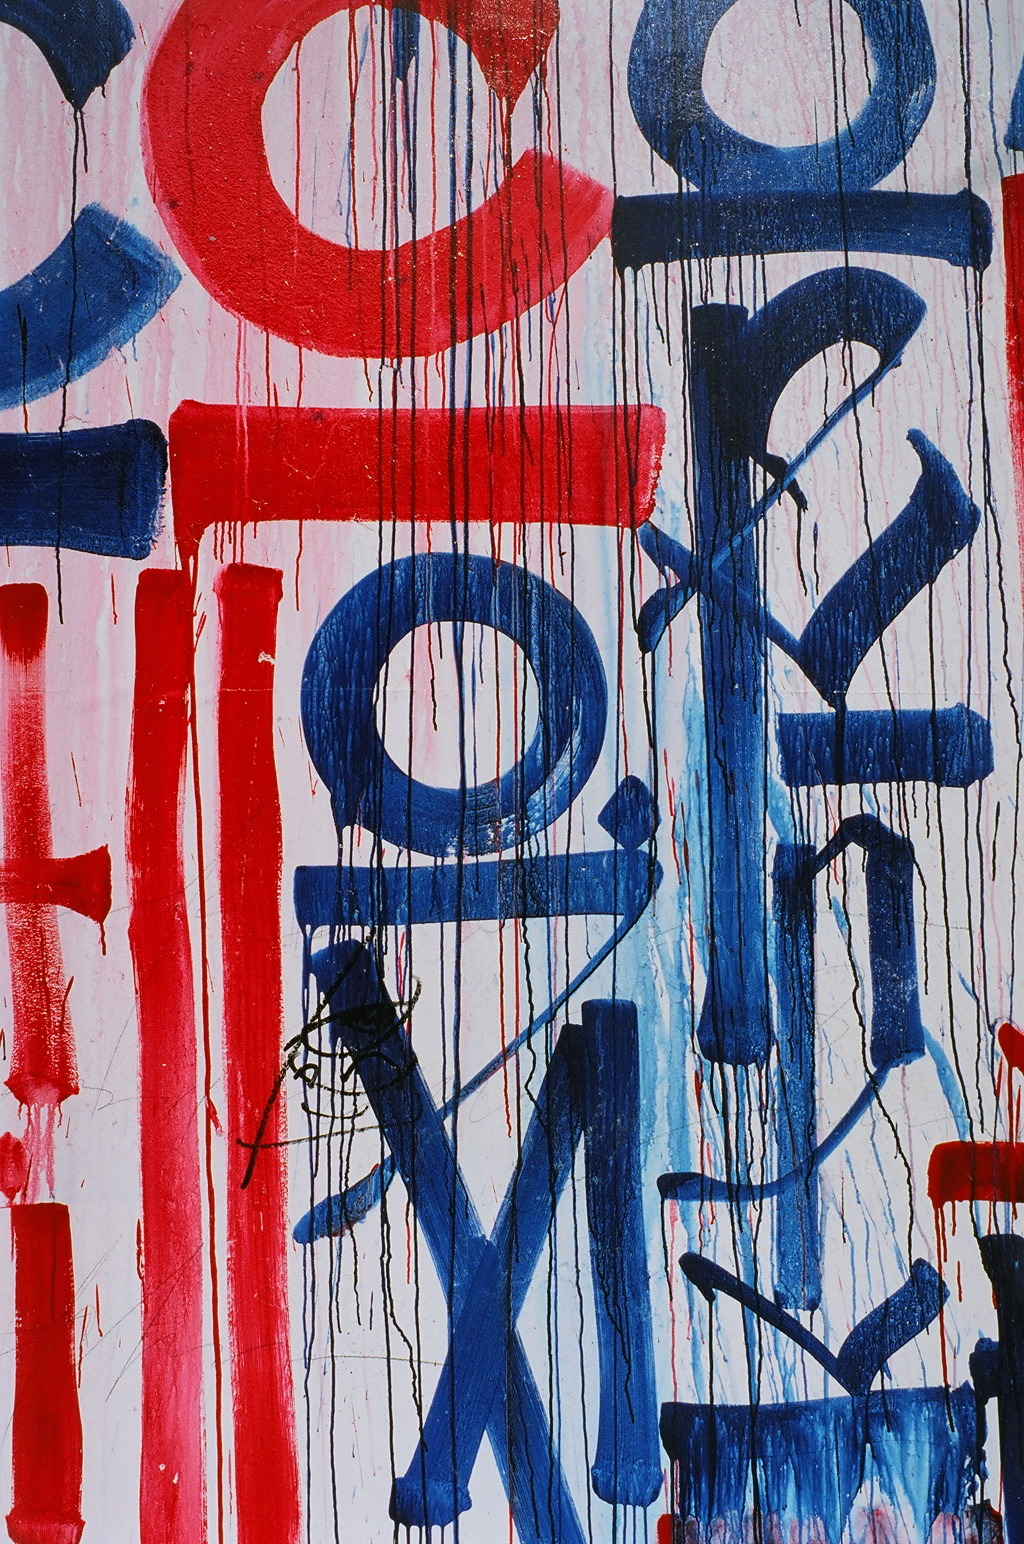 Detail of the Bowery Wall x Retna from an upcoming project.